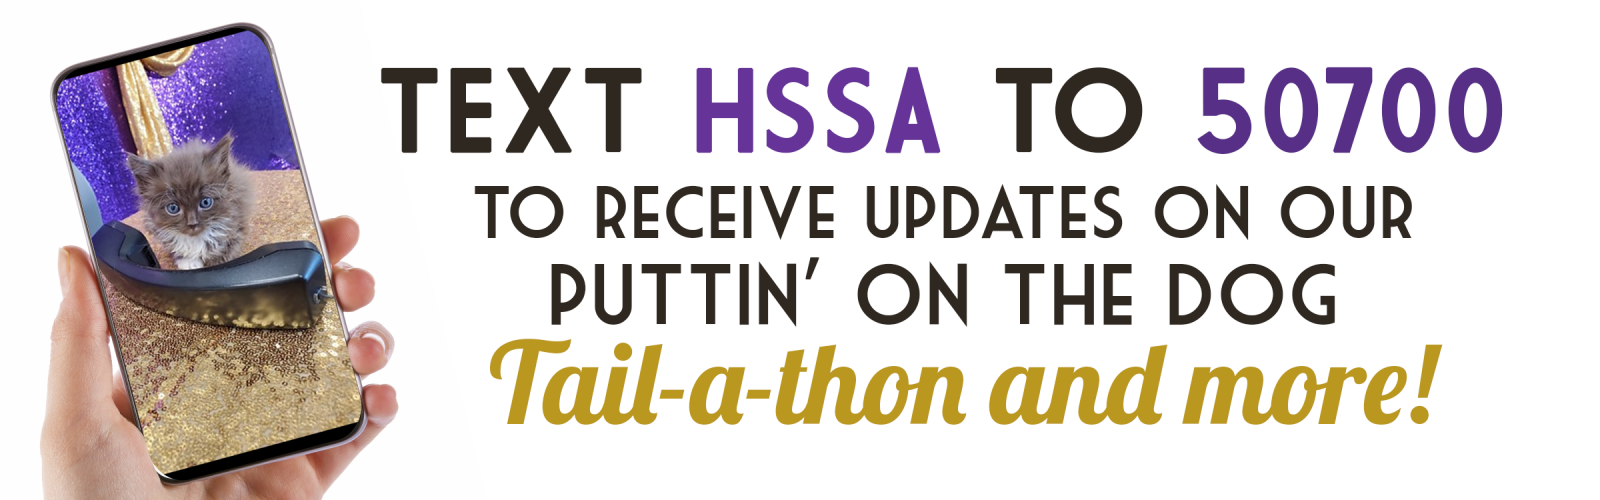 Text HSSA to 50700 to opt in graphic banner